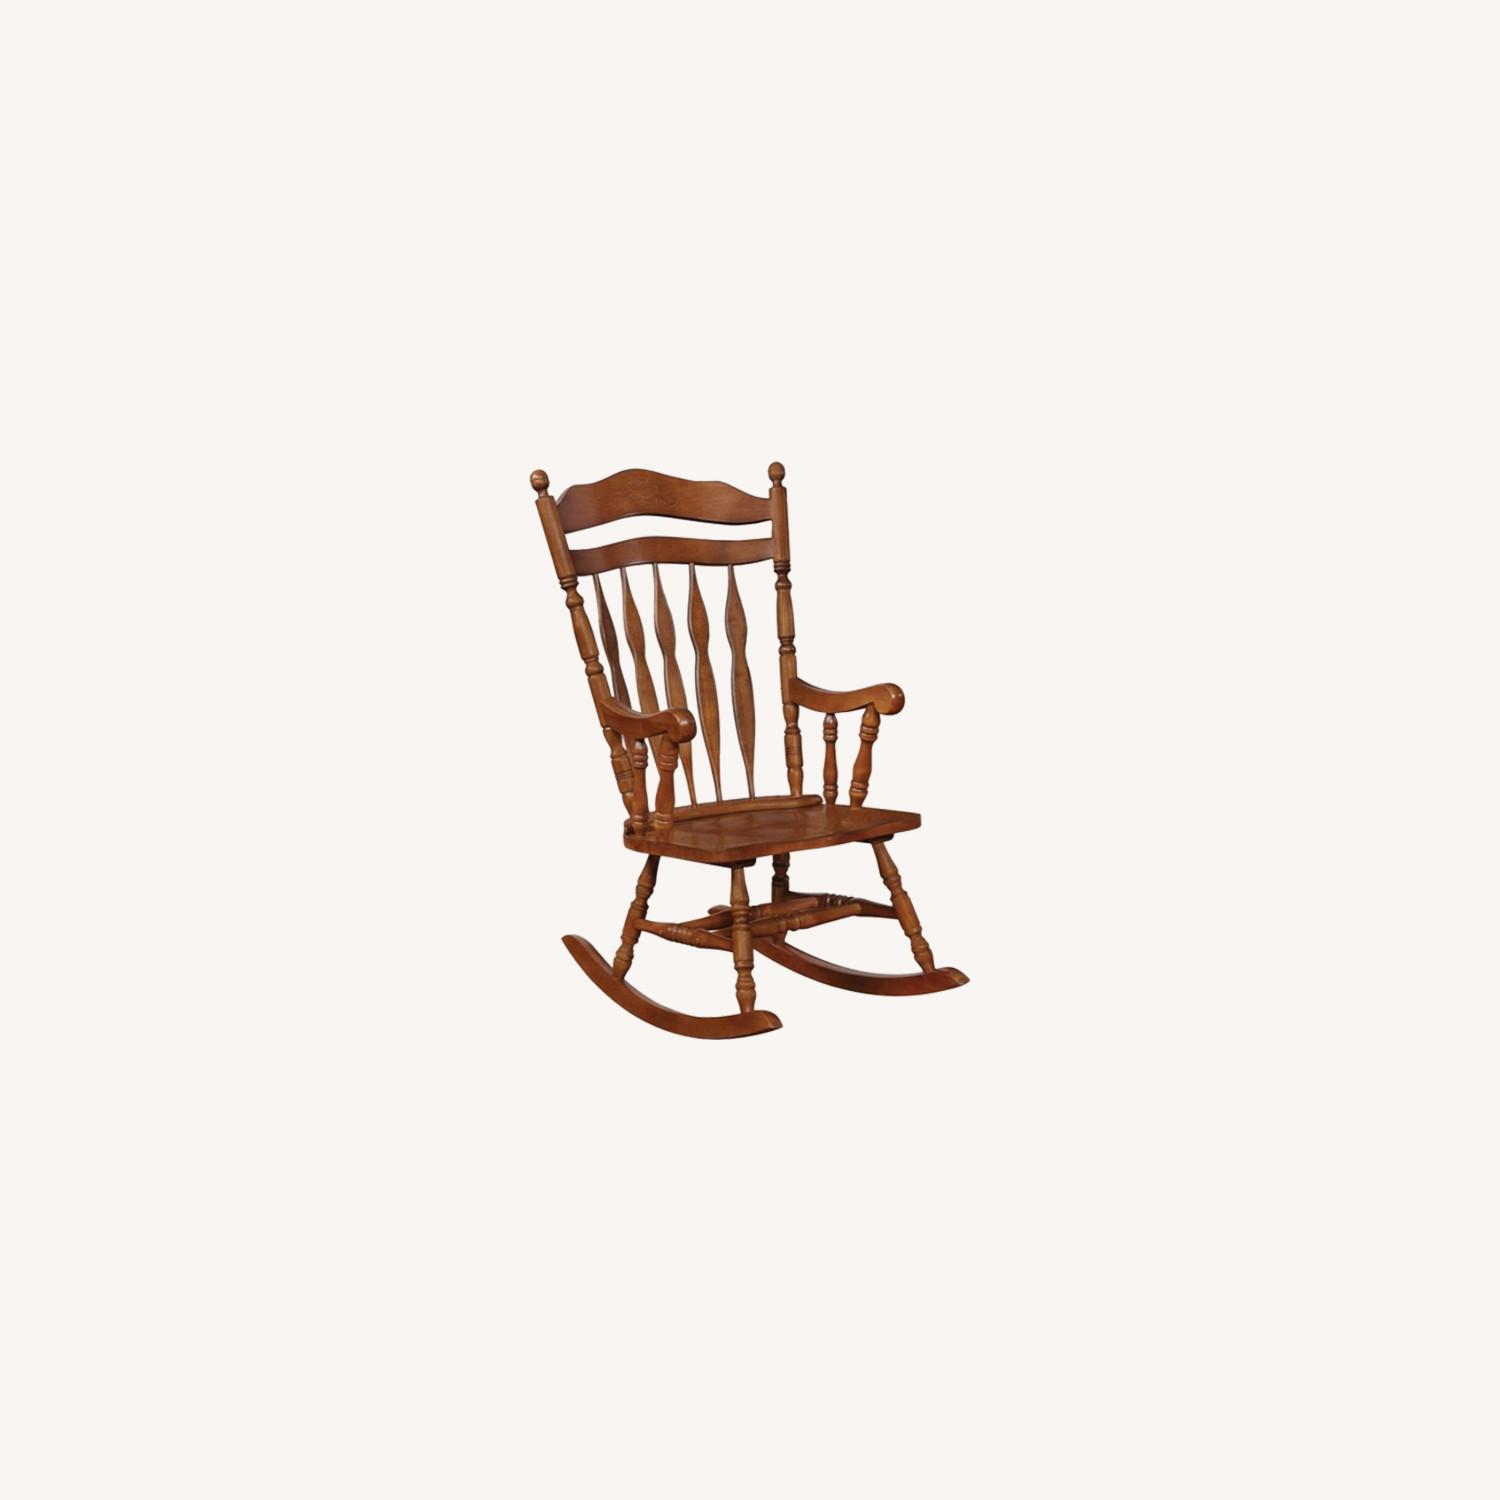 Windor Style Rocking Chair In Medium Brown Finish - image-5